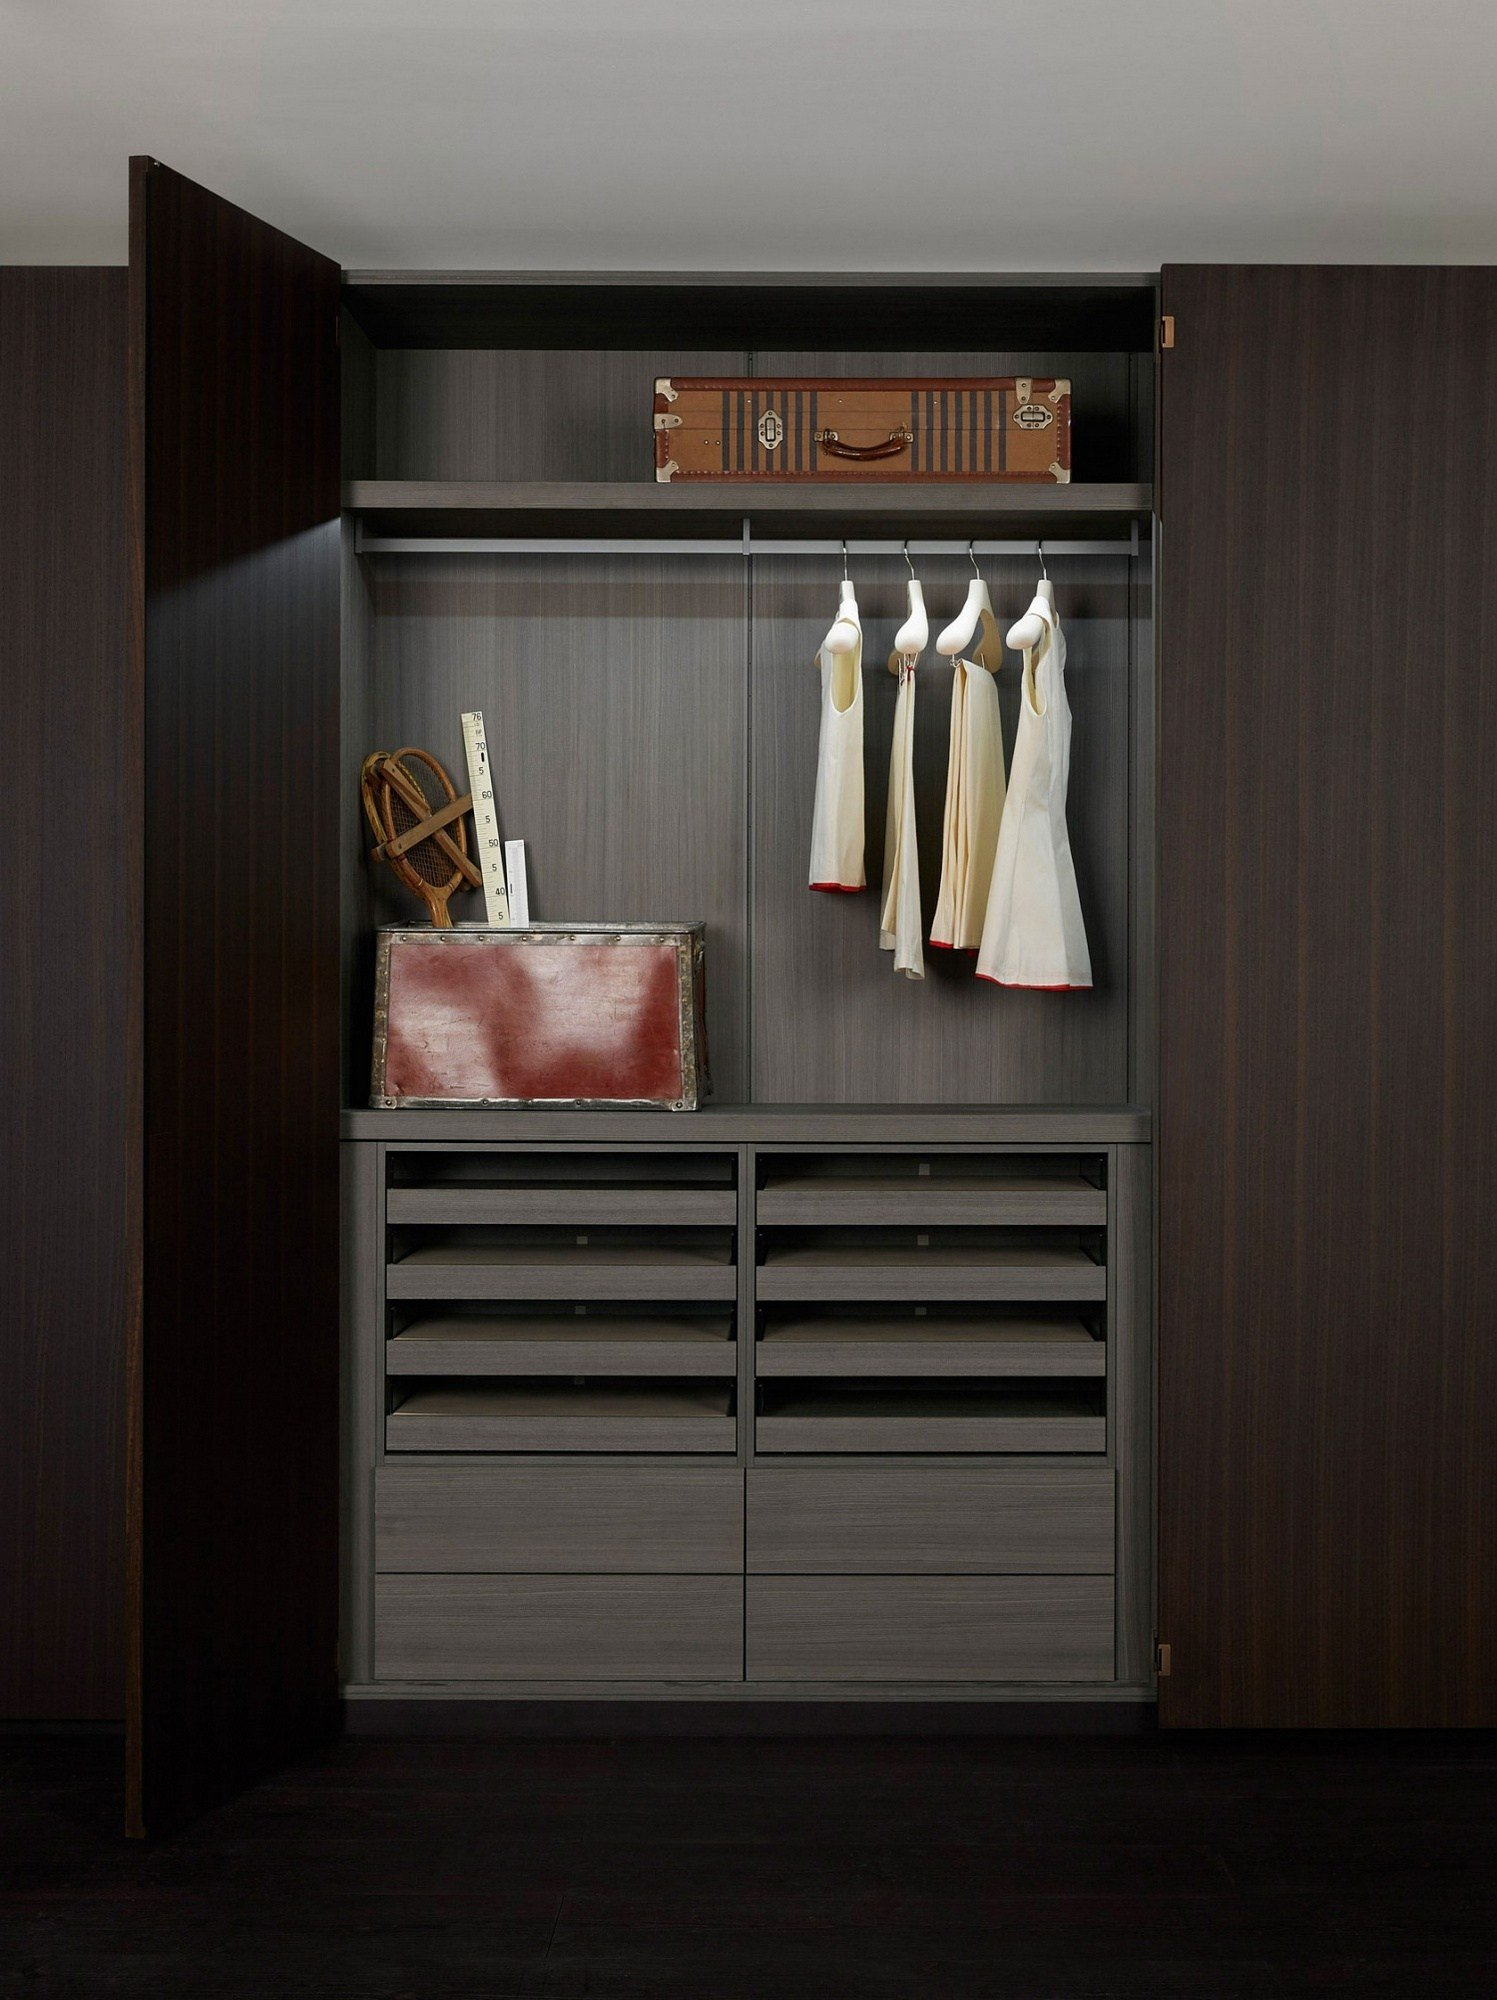 kleiderschrank nach mass storage einbau kleiderschrank. Black Bedroom Furniture Sets. Home Design Ideas